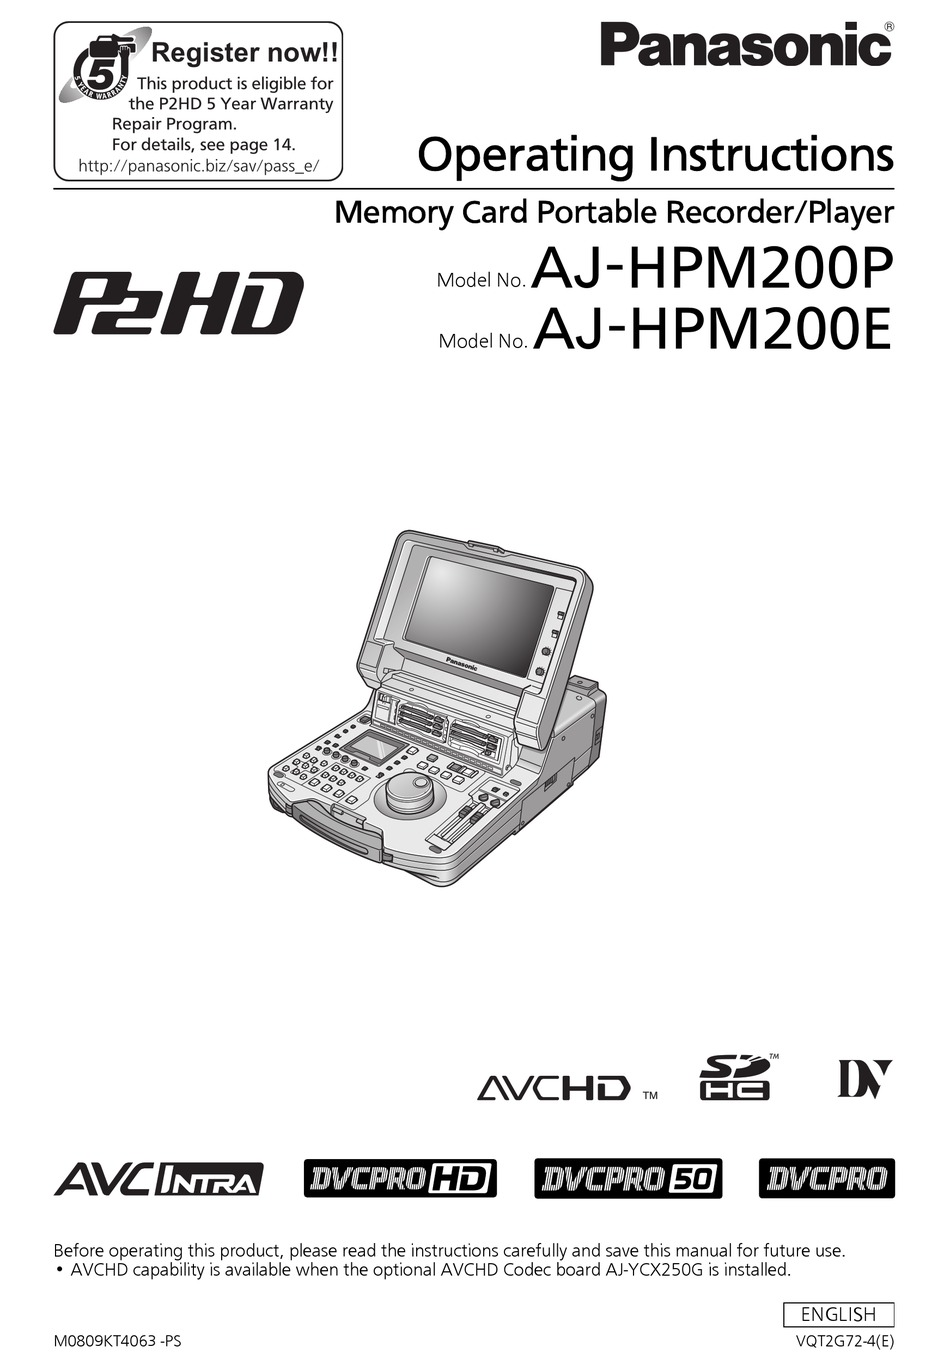 PANASONIC AJ-HPM200P OPERATION INSTRUCTION MANUAL Pdf